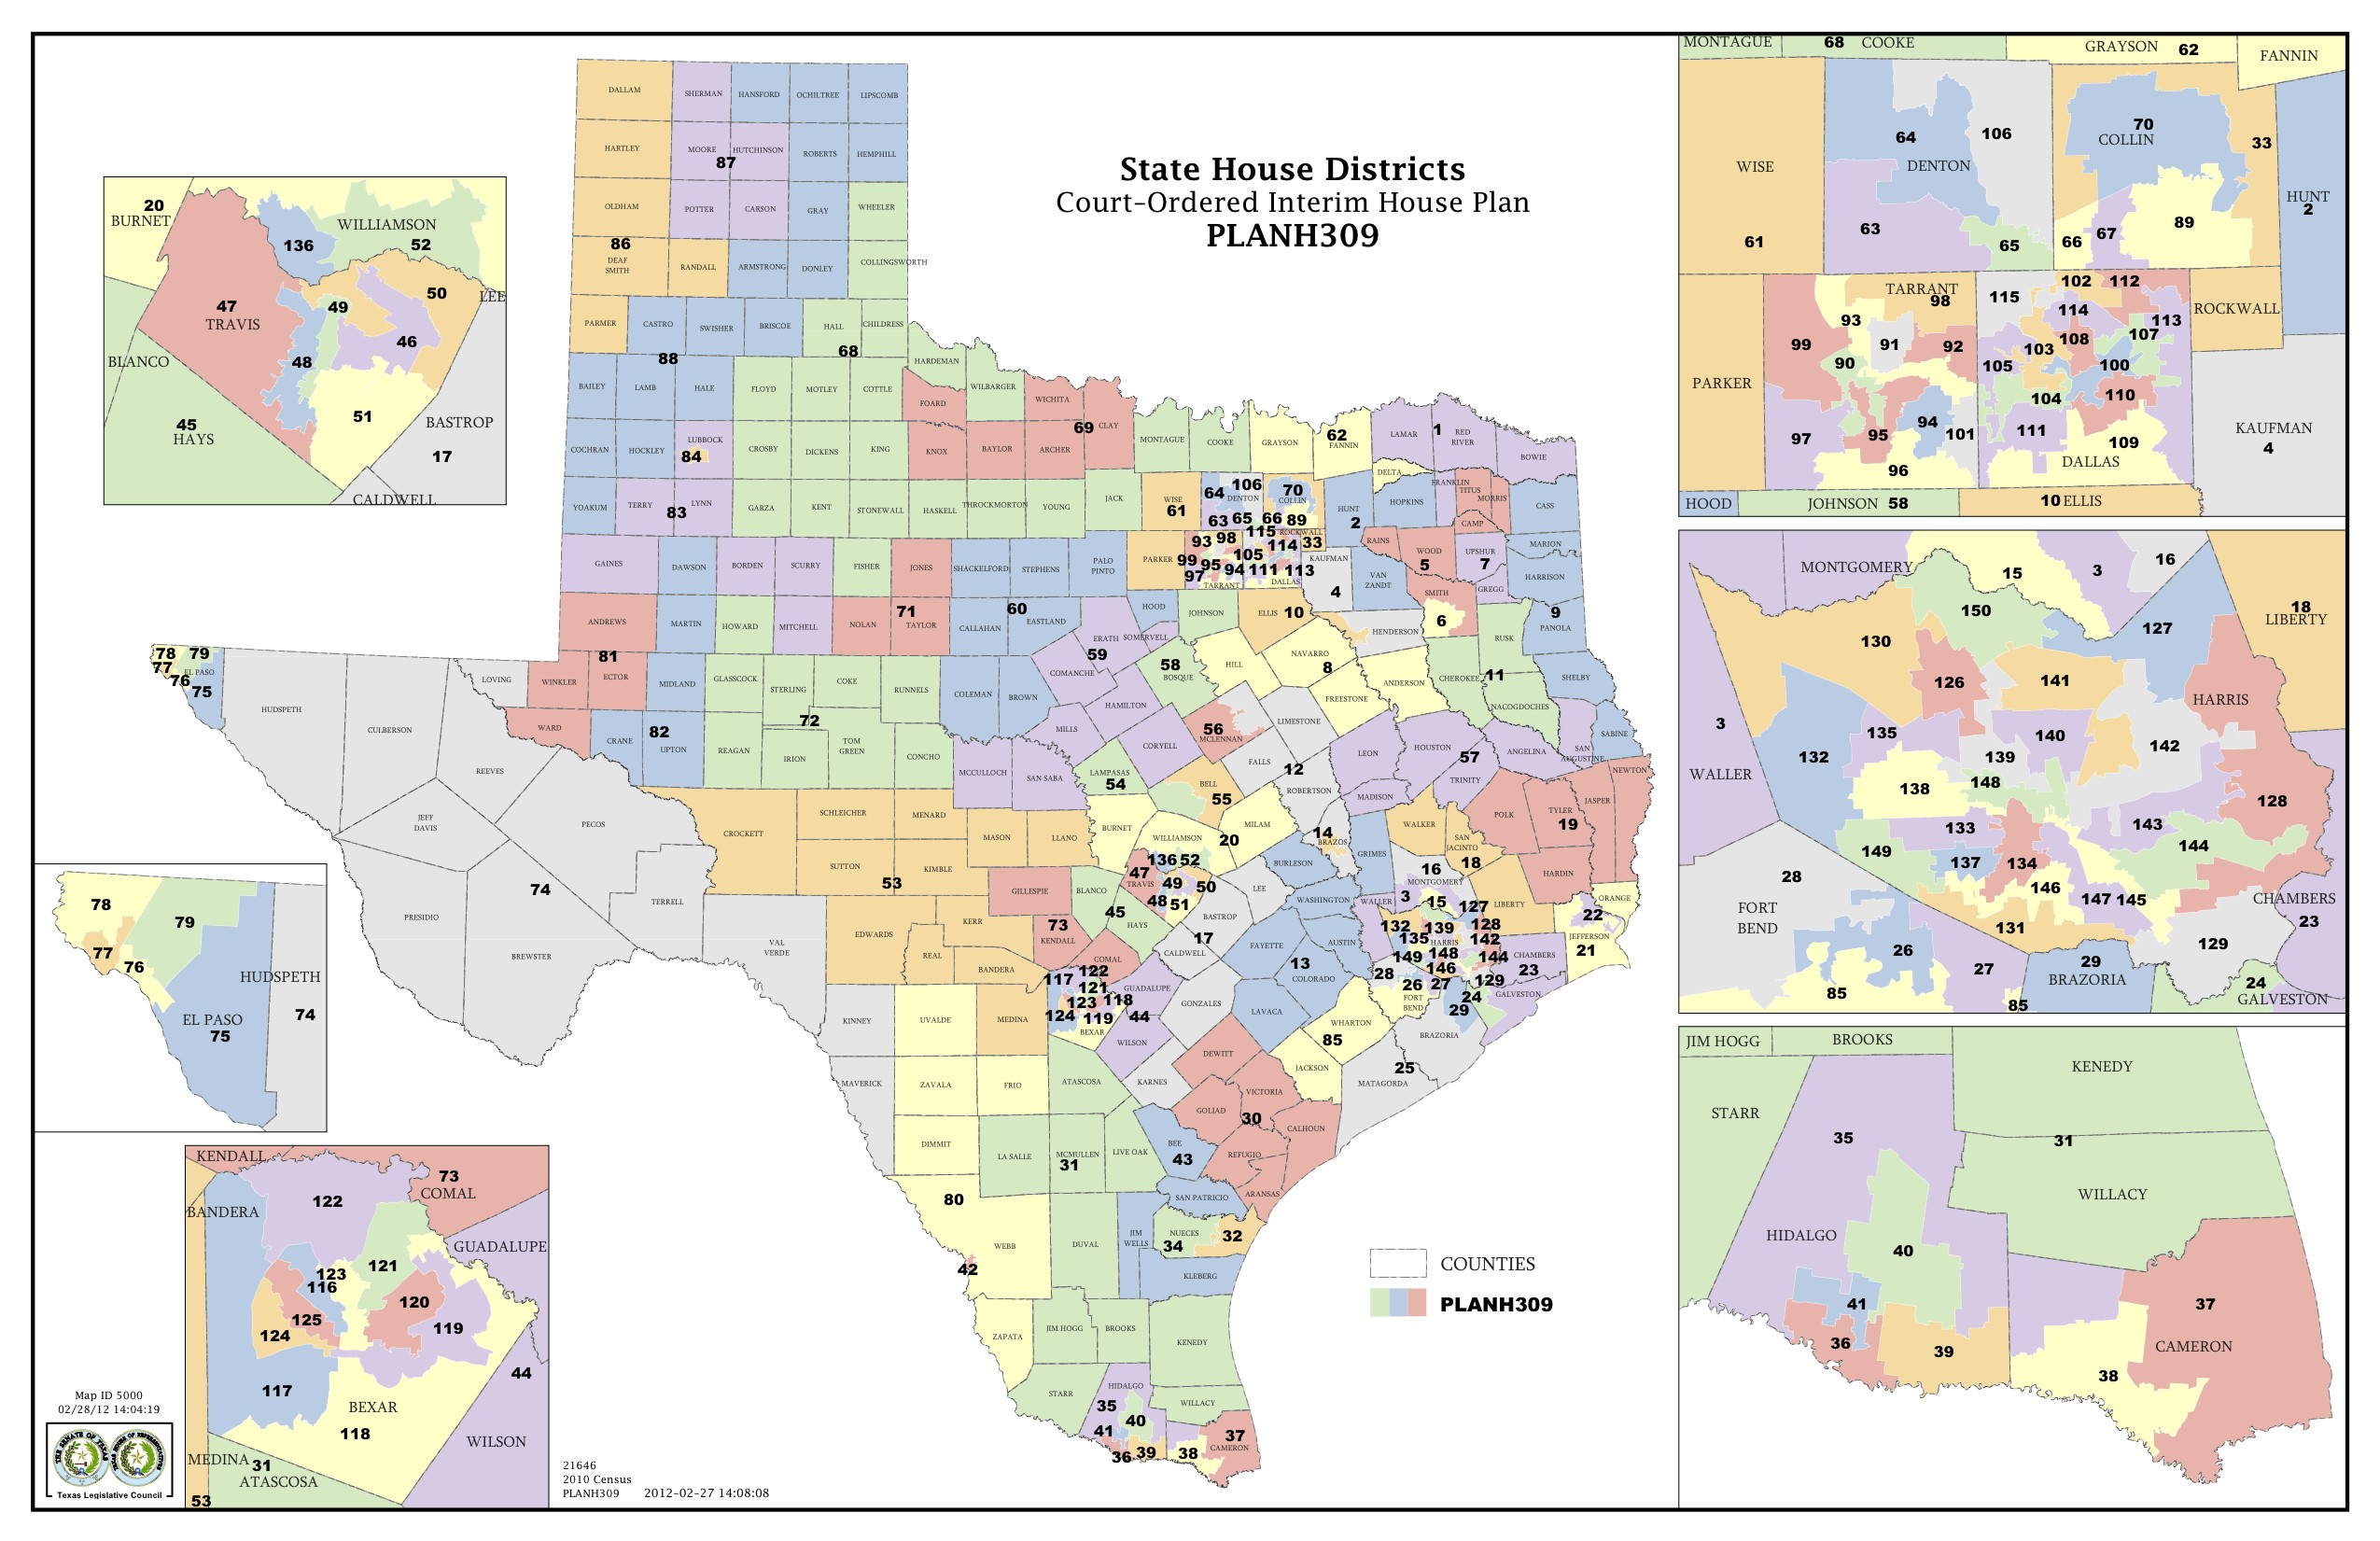 Texas Us Senate District Map New State Senate Awesome Map Texas - Texas Us Senate District Map